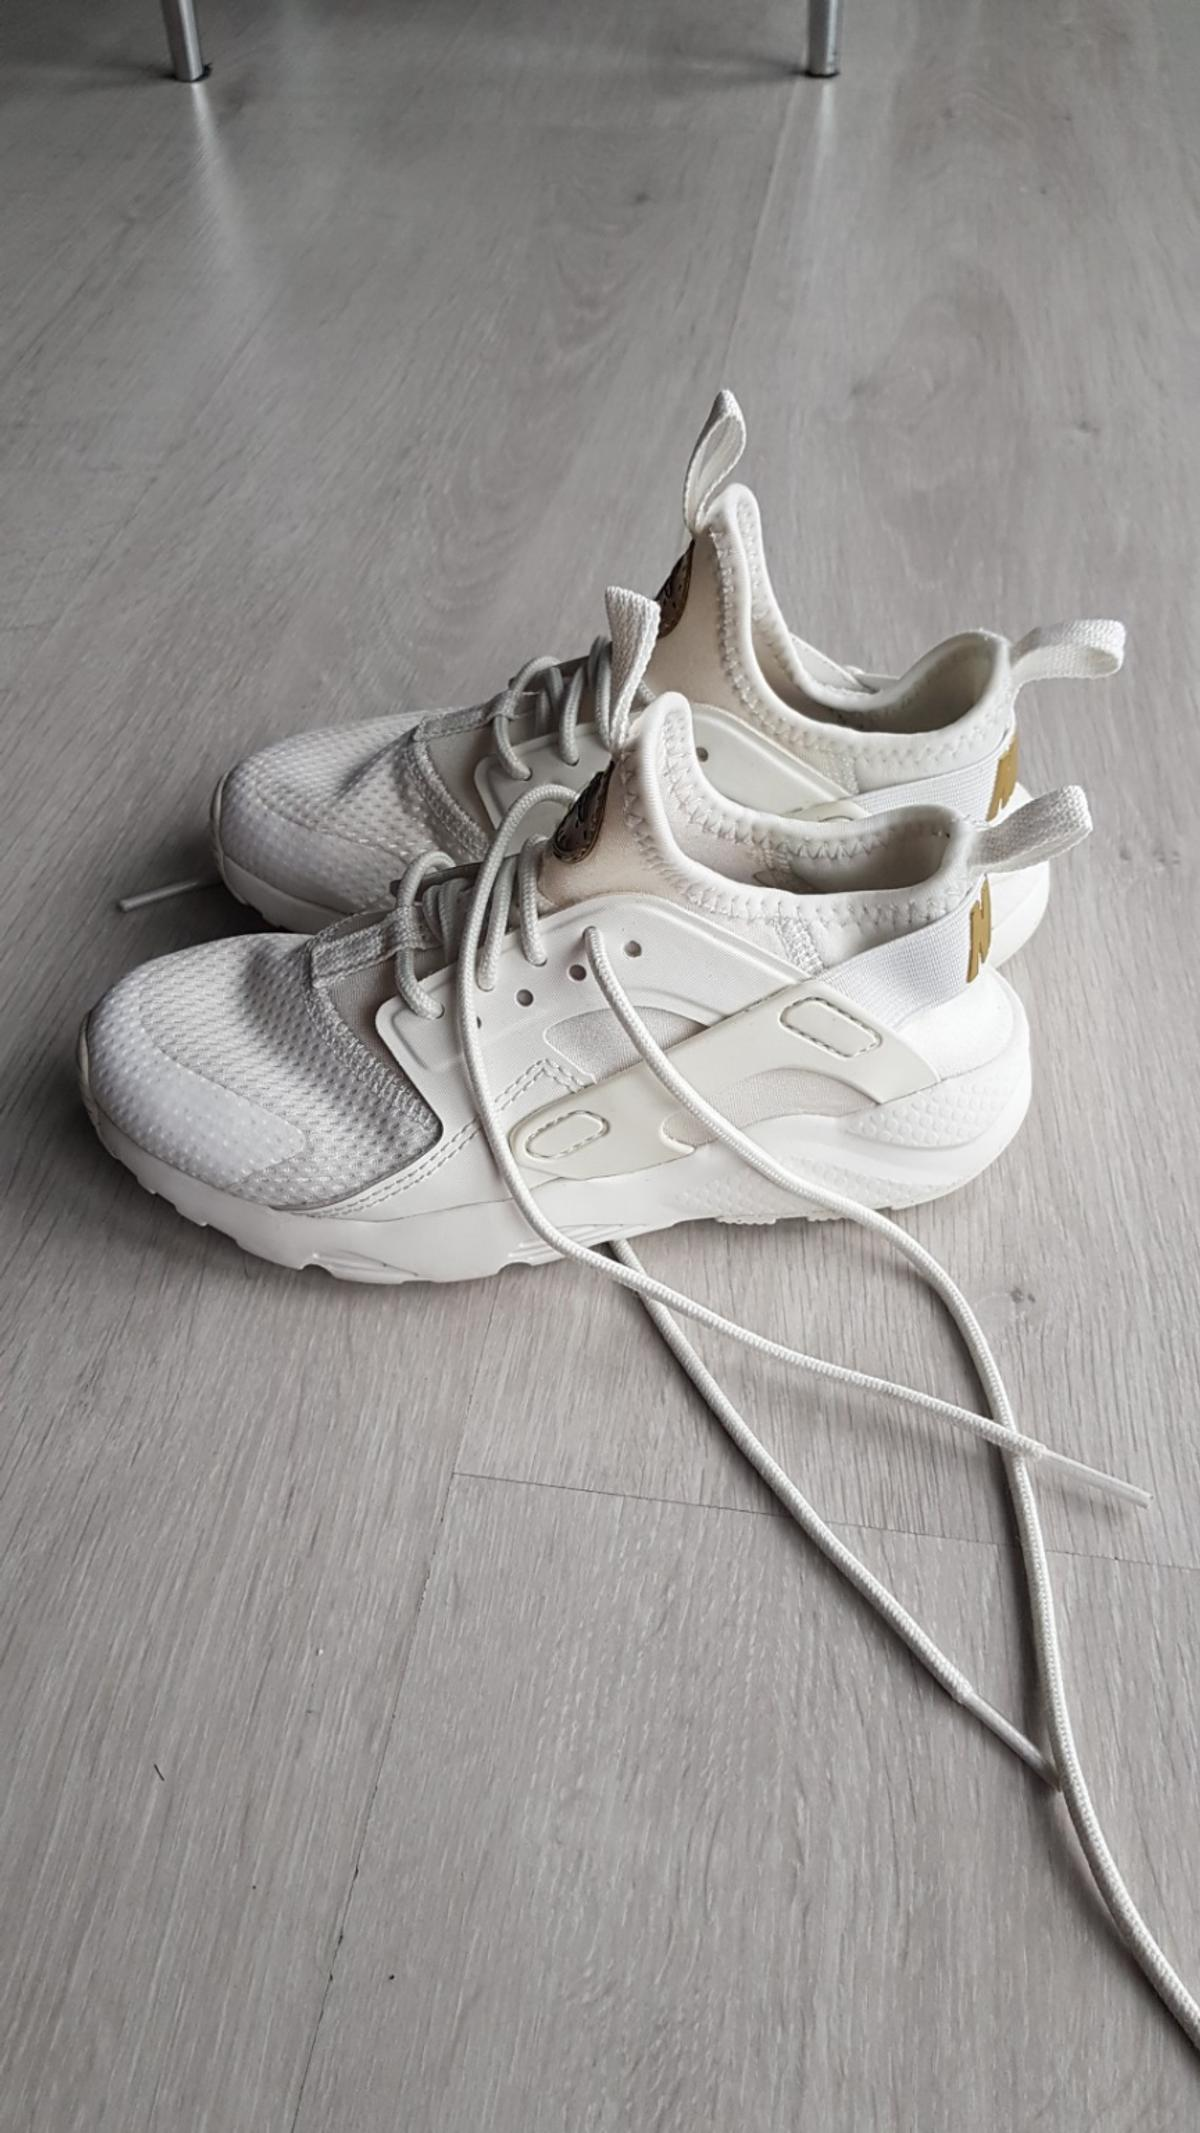 best sneakers 02a9f eecae Huarache kids trainers in SE8 Lewisham for £10.00 for sale ...